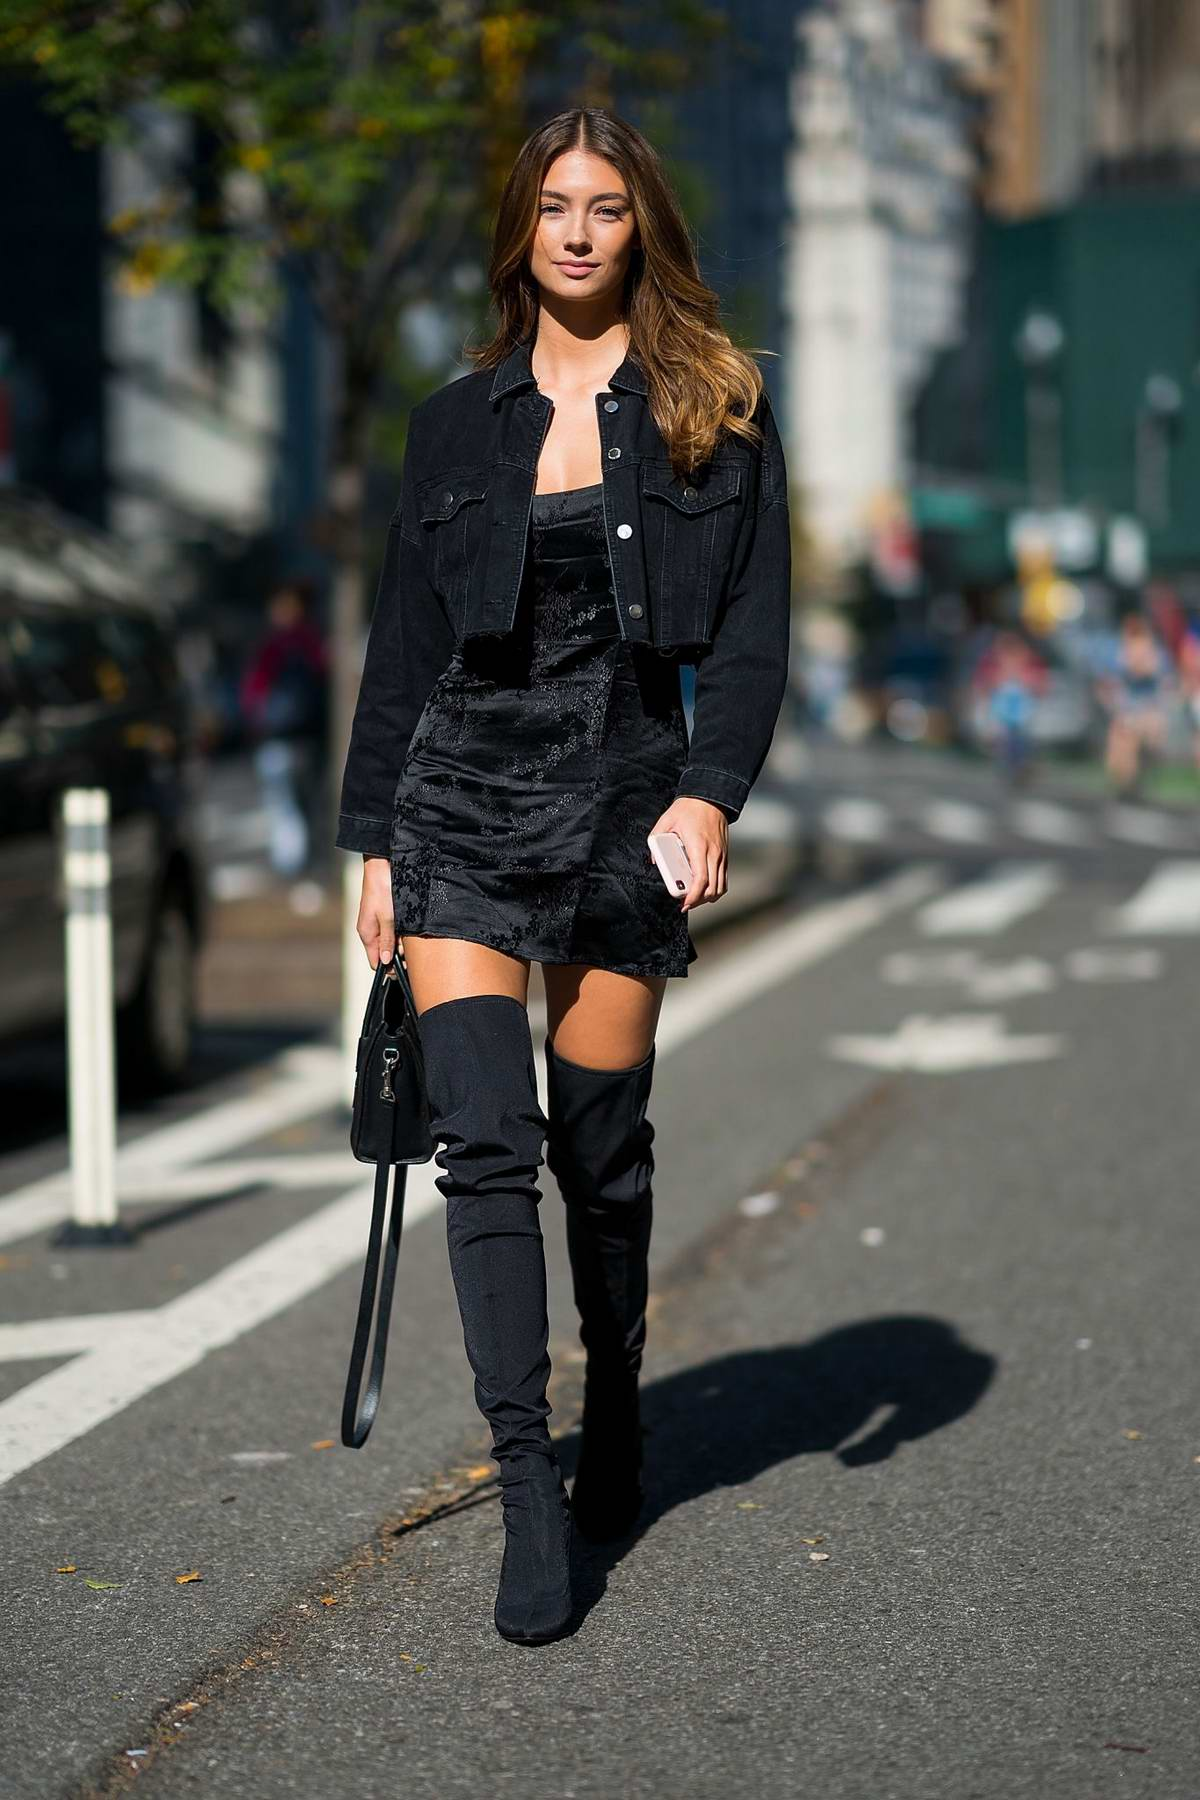 Lorena Rae attends fittings for the Victoria's Secret Fashion Show in Midtown, New York City